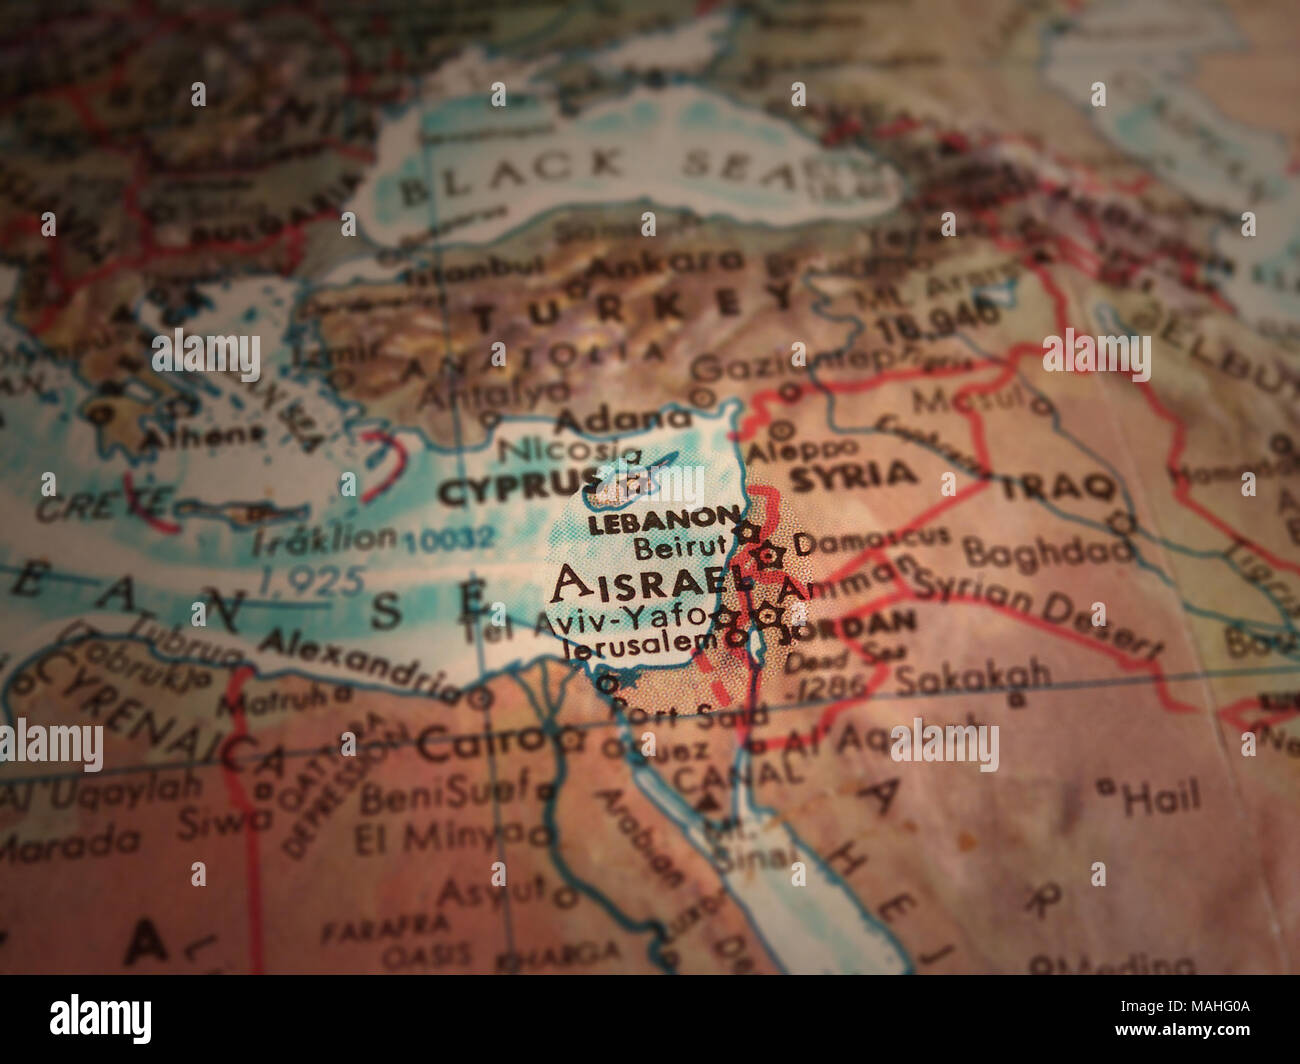 Middle east map israel in focus stock photo 178635978 alamy middle east map israel in focus gumiabroncs Gallery